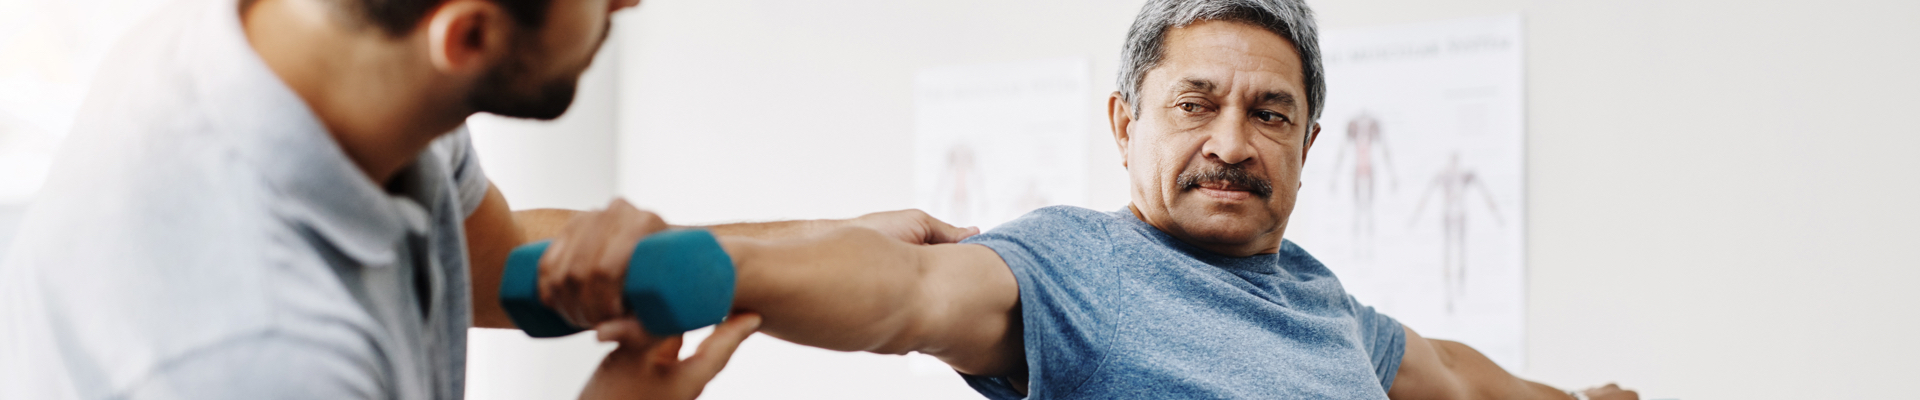 A senior man lifts a small hand weight as a part of his physical therapy treatment